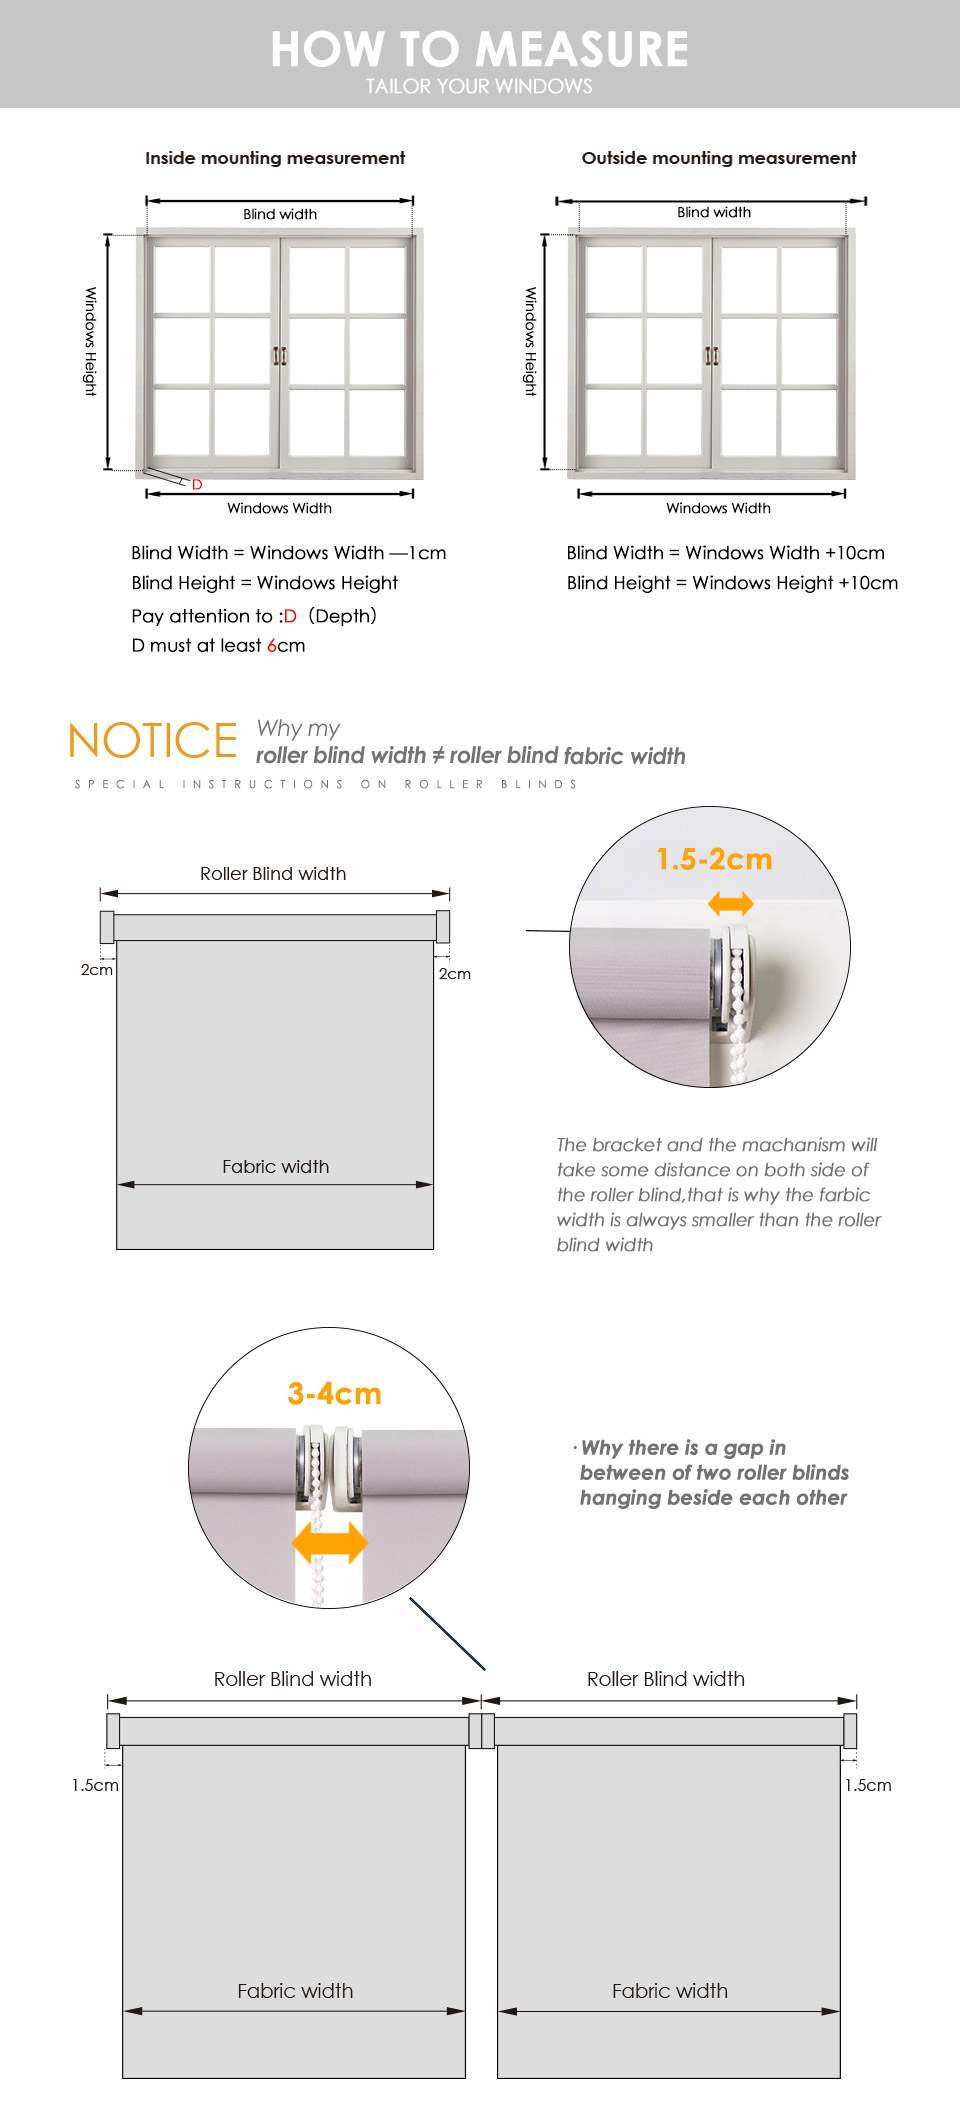 window blind sizes standard size schrling 2018 38mm thick alum tube waterproof blackout roller blinds fire retardant for shower room window customized size